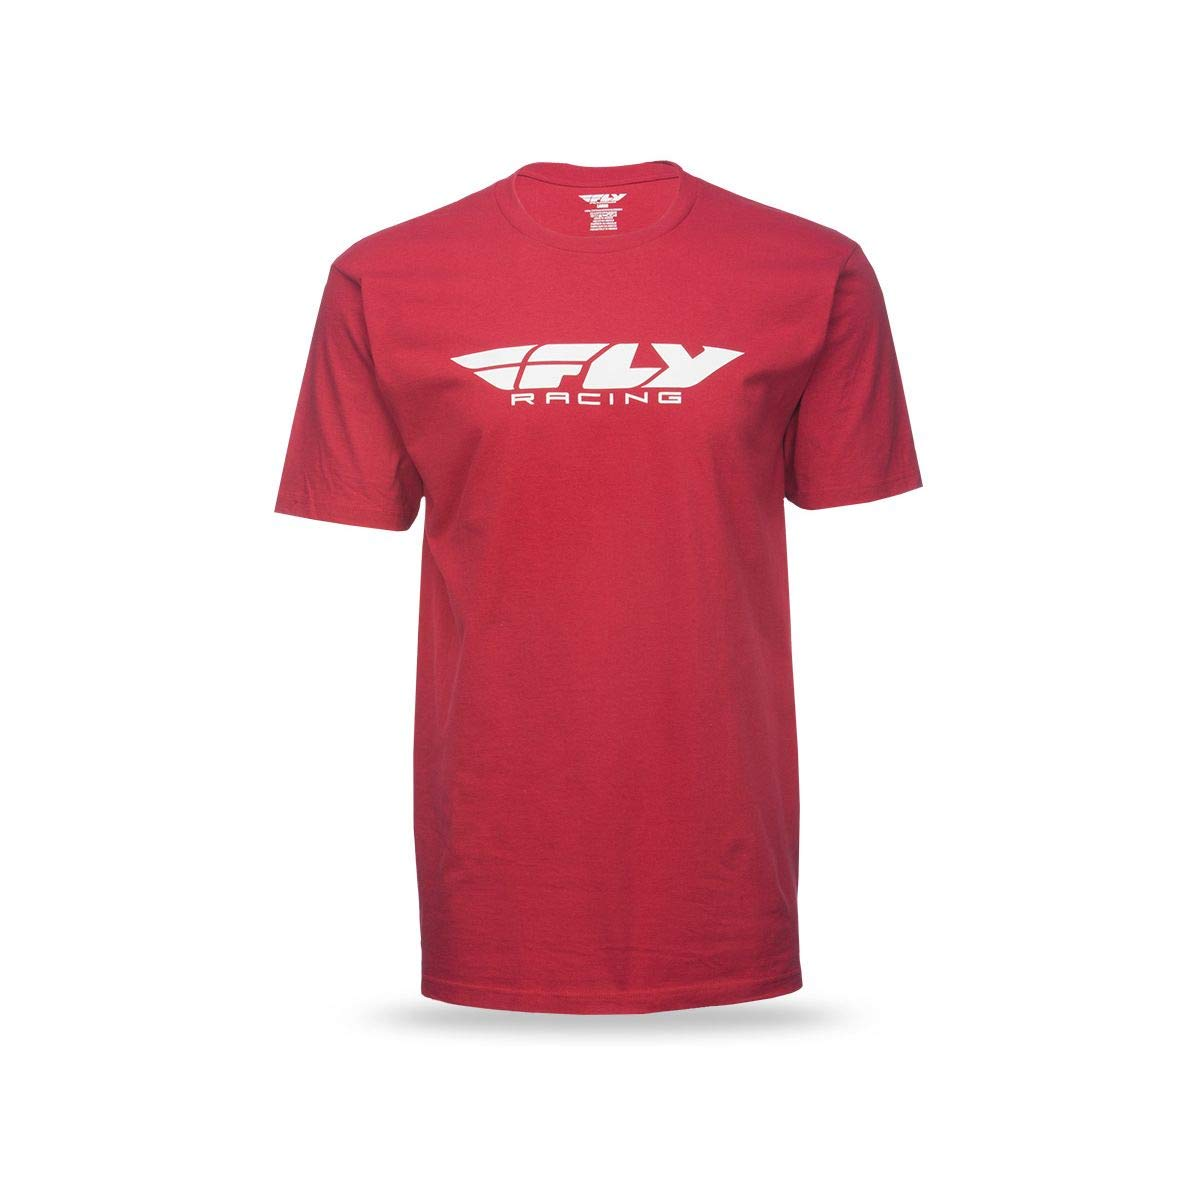 Fly Racing Corporate T-Shirt (Large) (RED) by Fly Racing